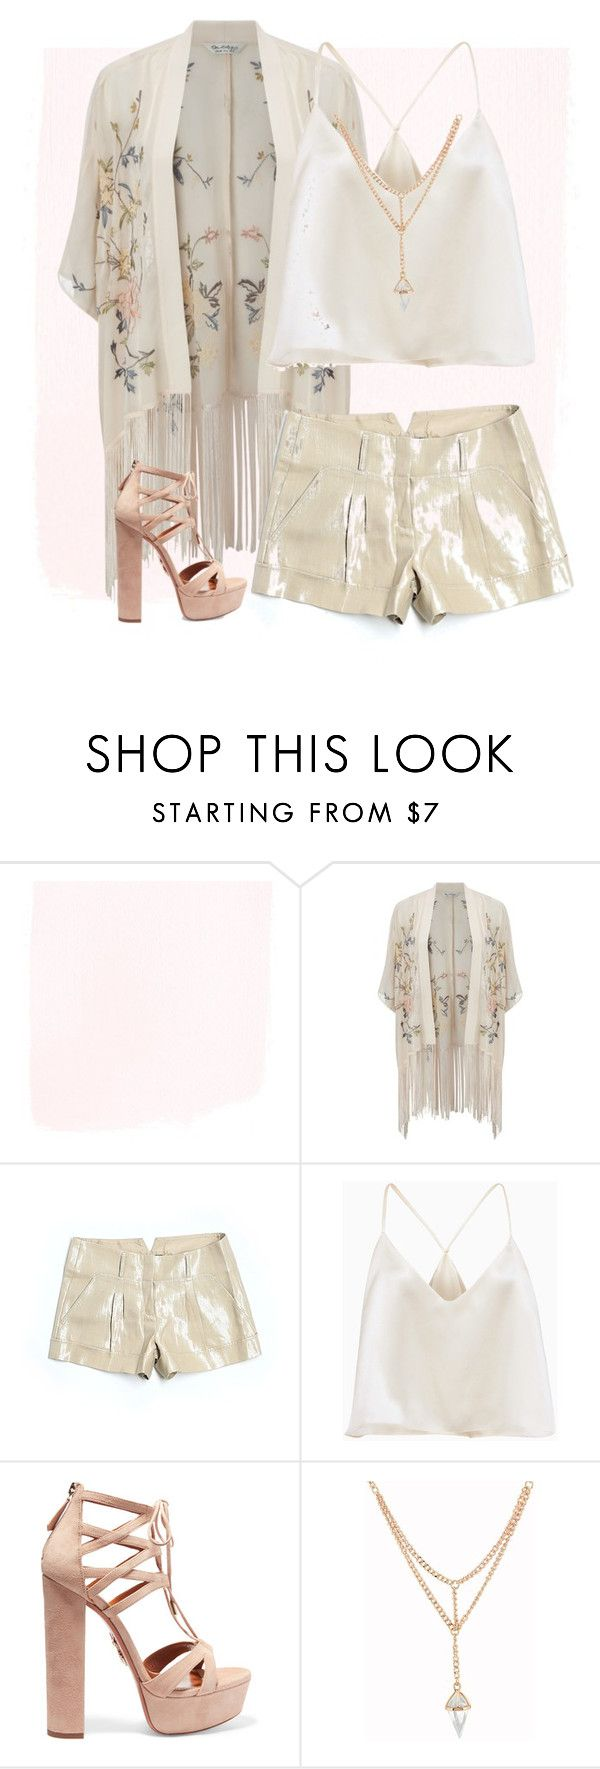 """Summer"" by artistkarstenmouras ❤ liked on Polyvore featuring Miss Selfridge, BCBGMAXAZRIA and Aquazzura"